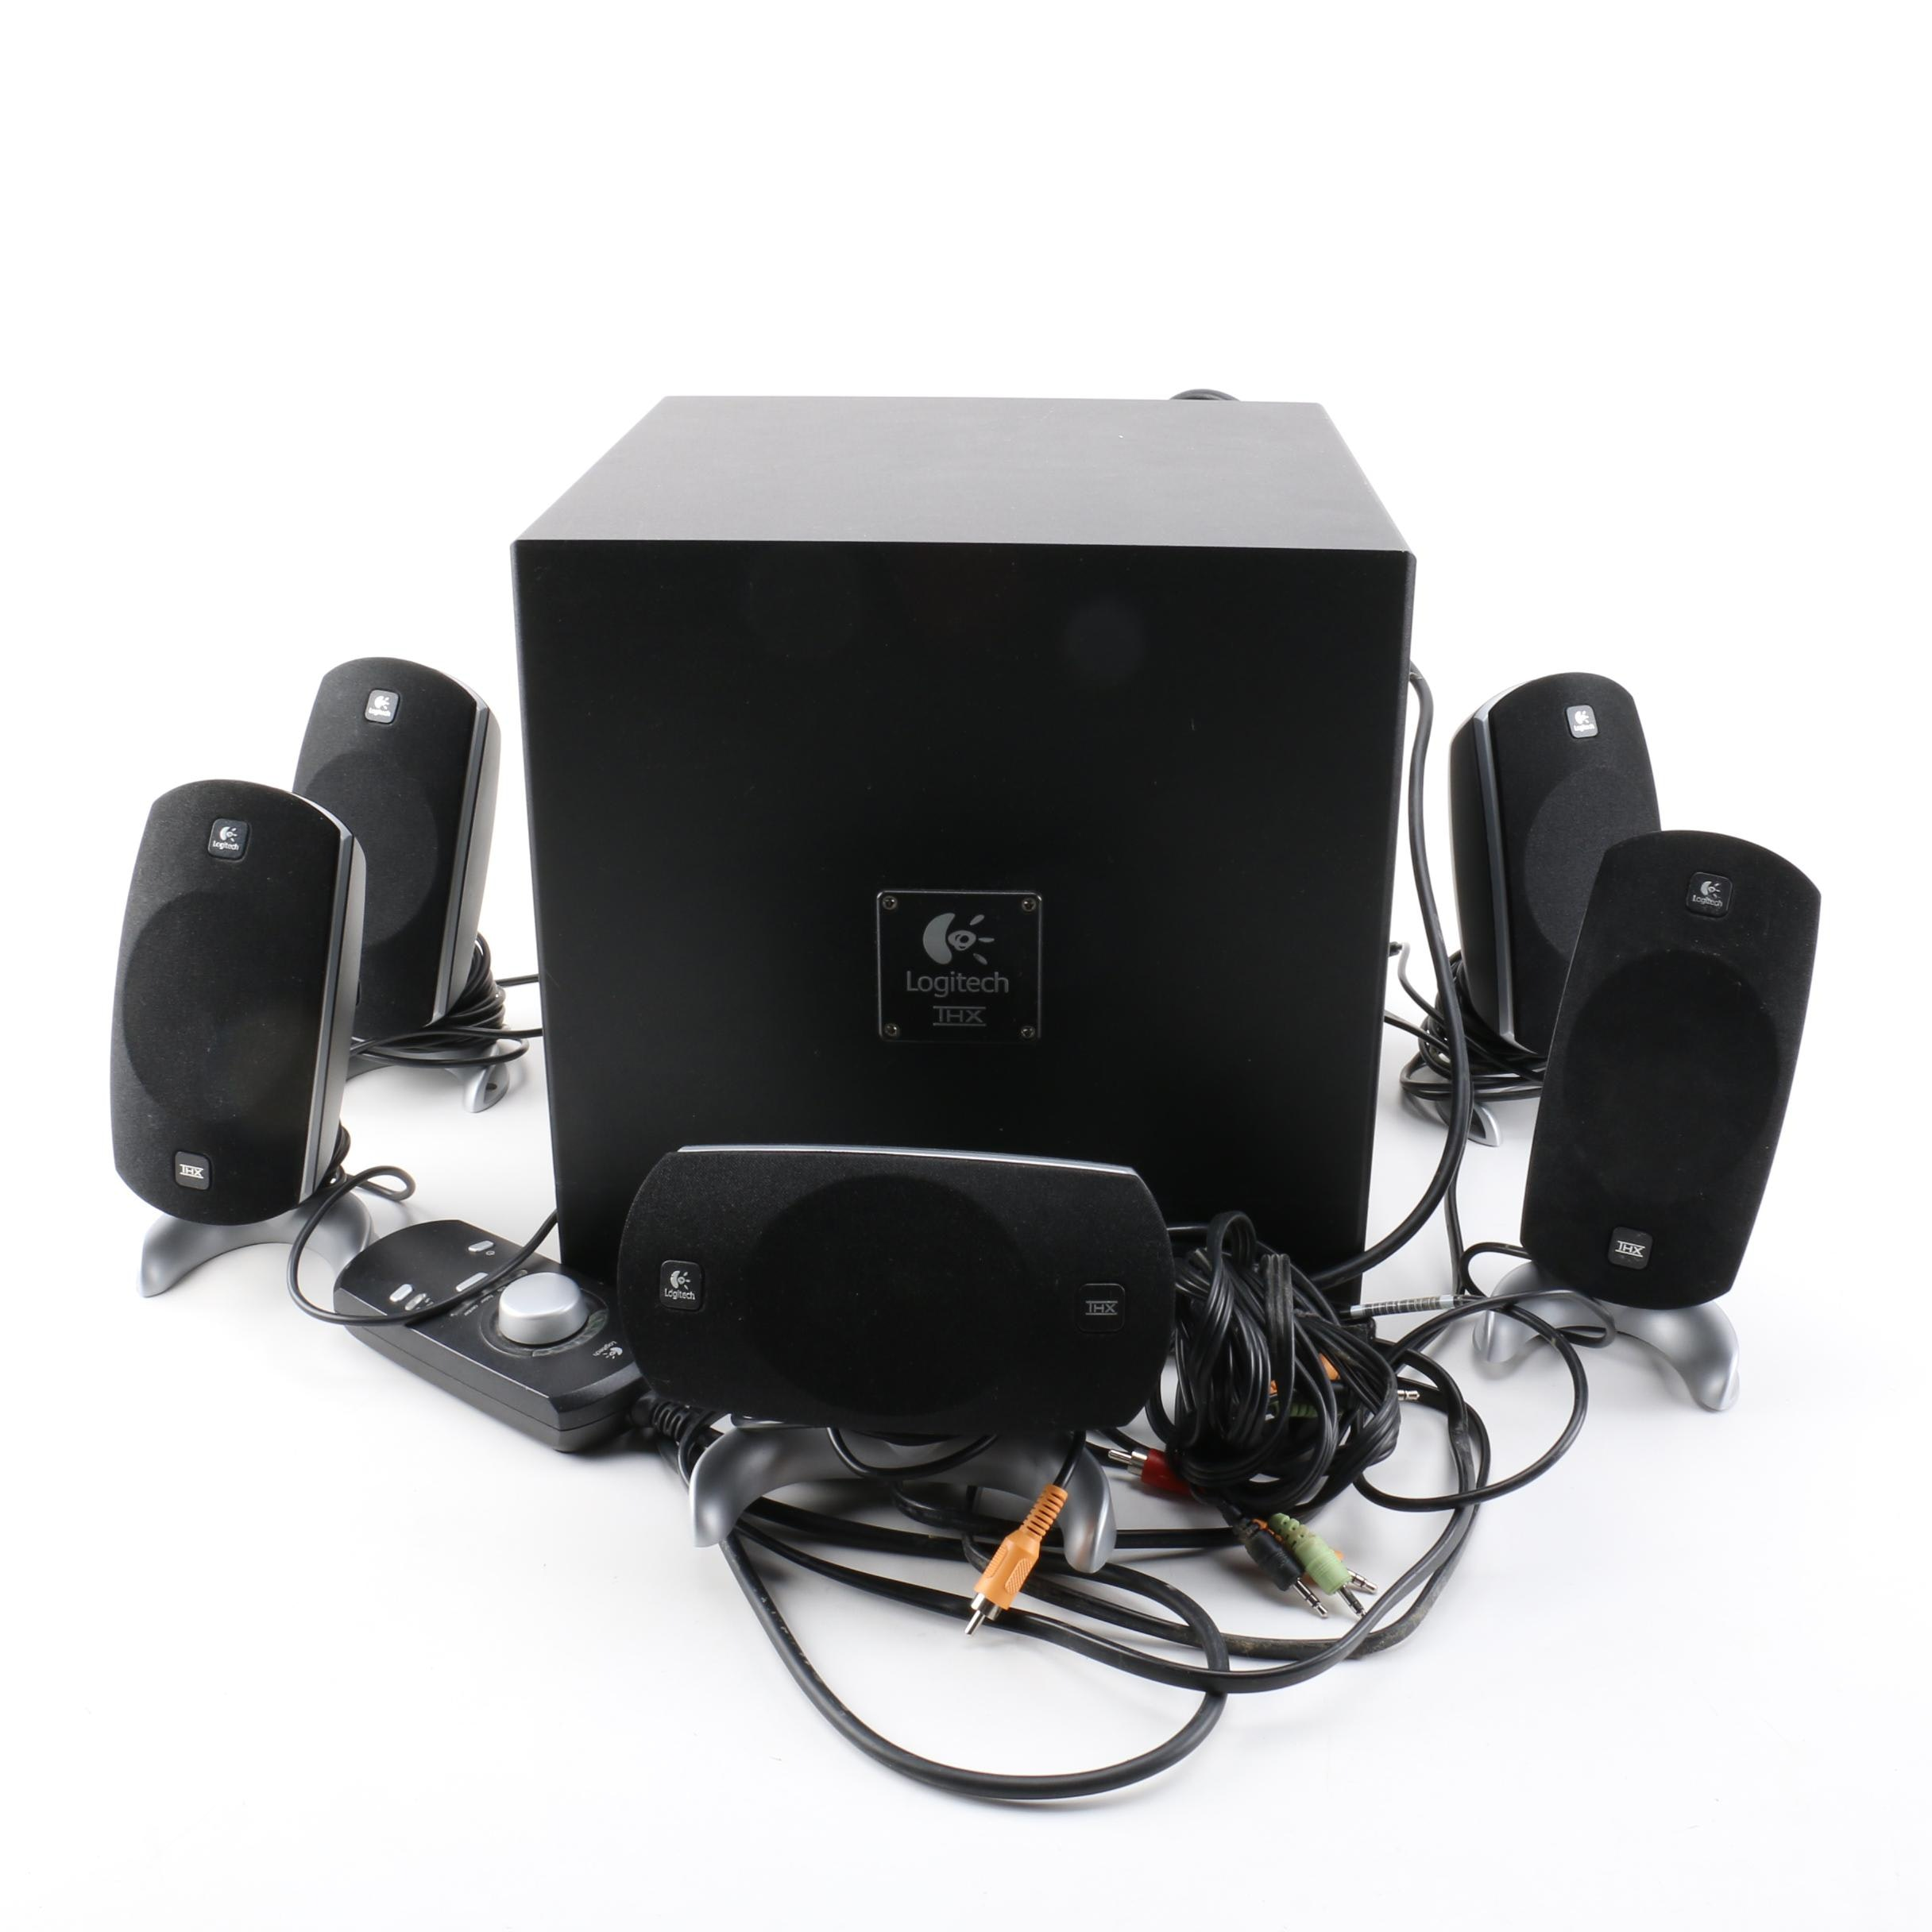 Logitech Z-5300 Surround Sound Speaker System